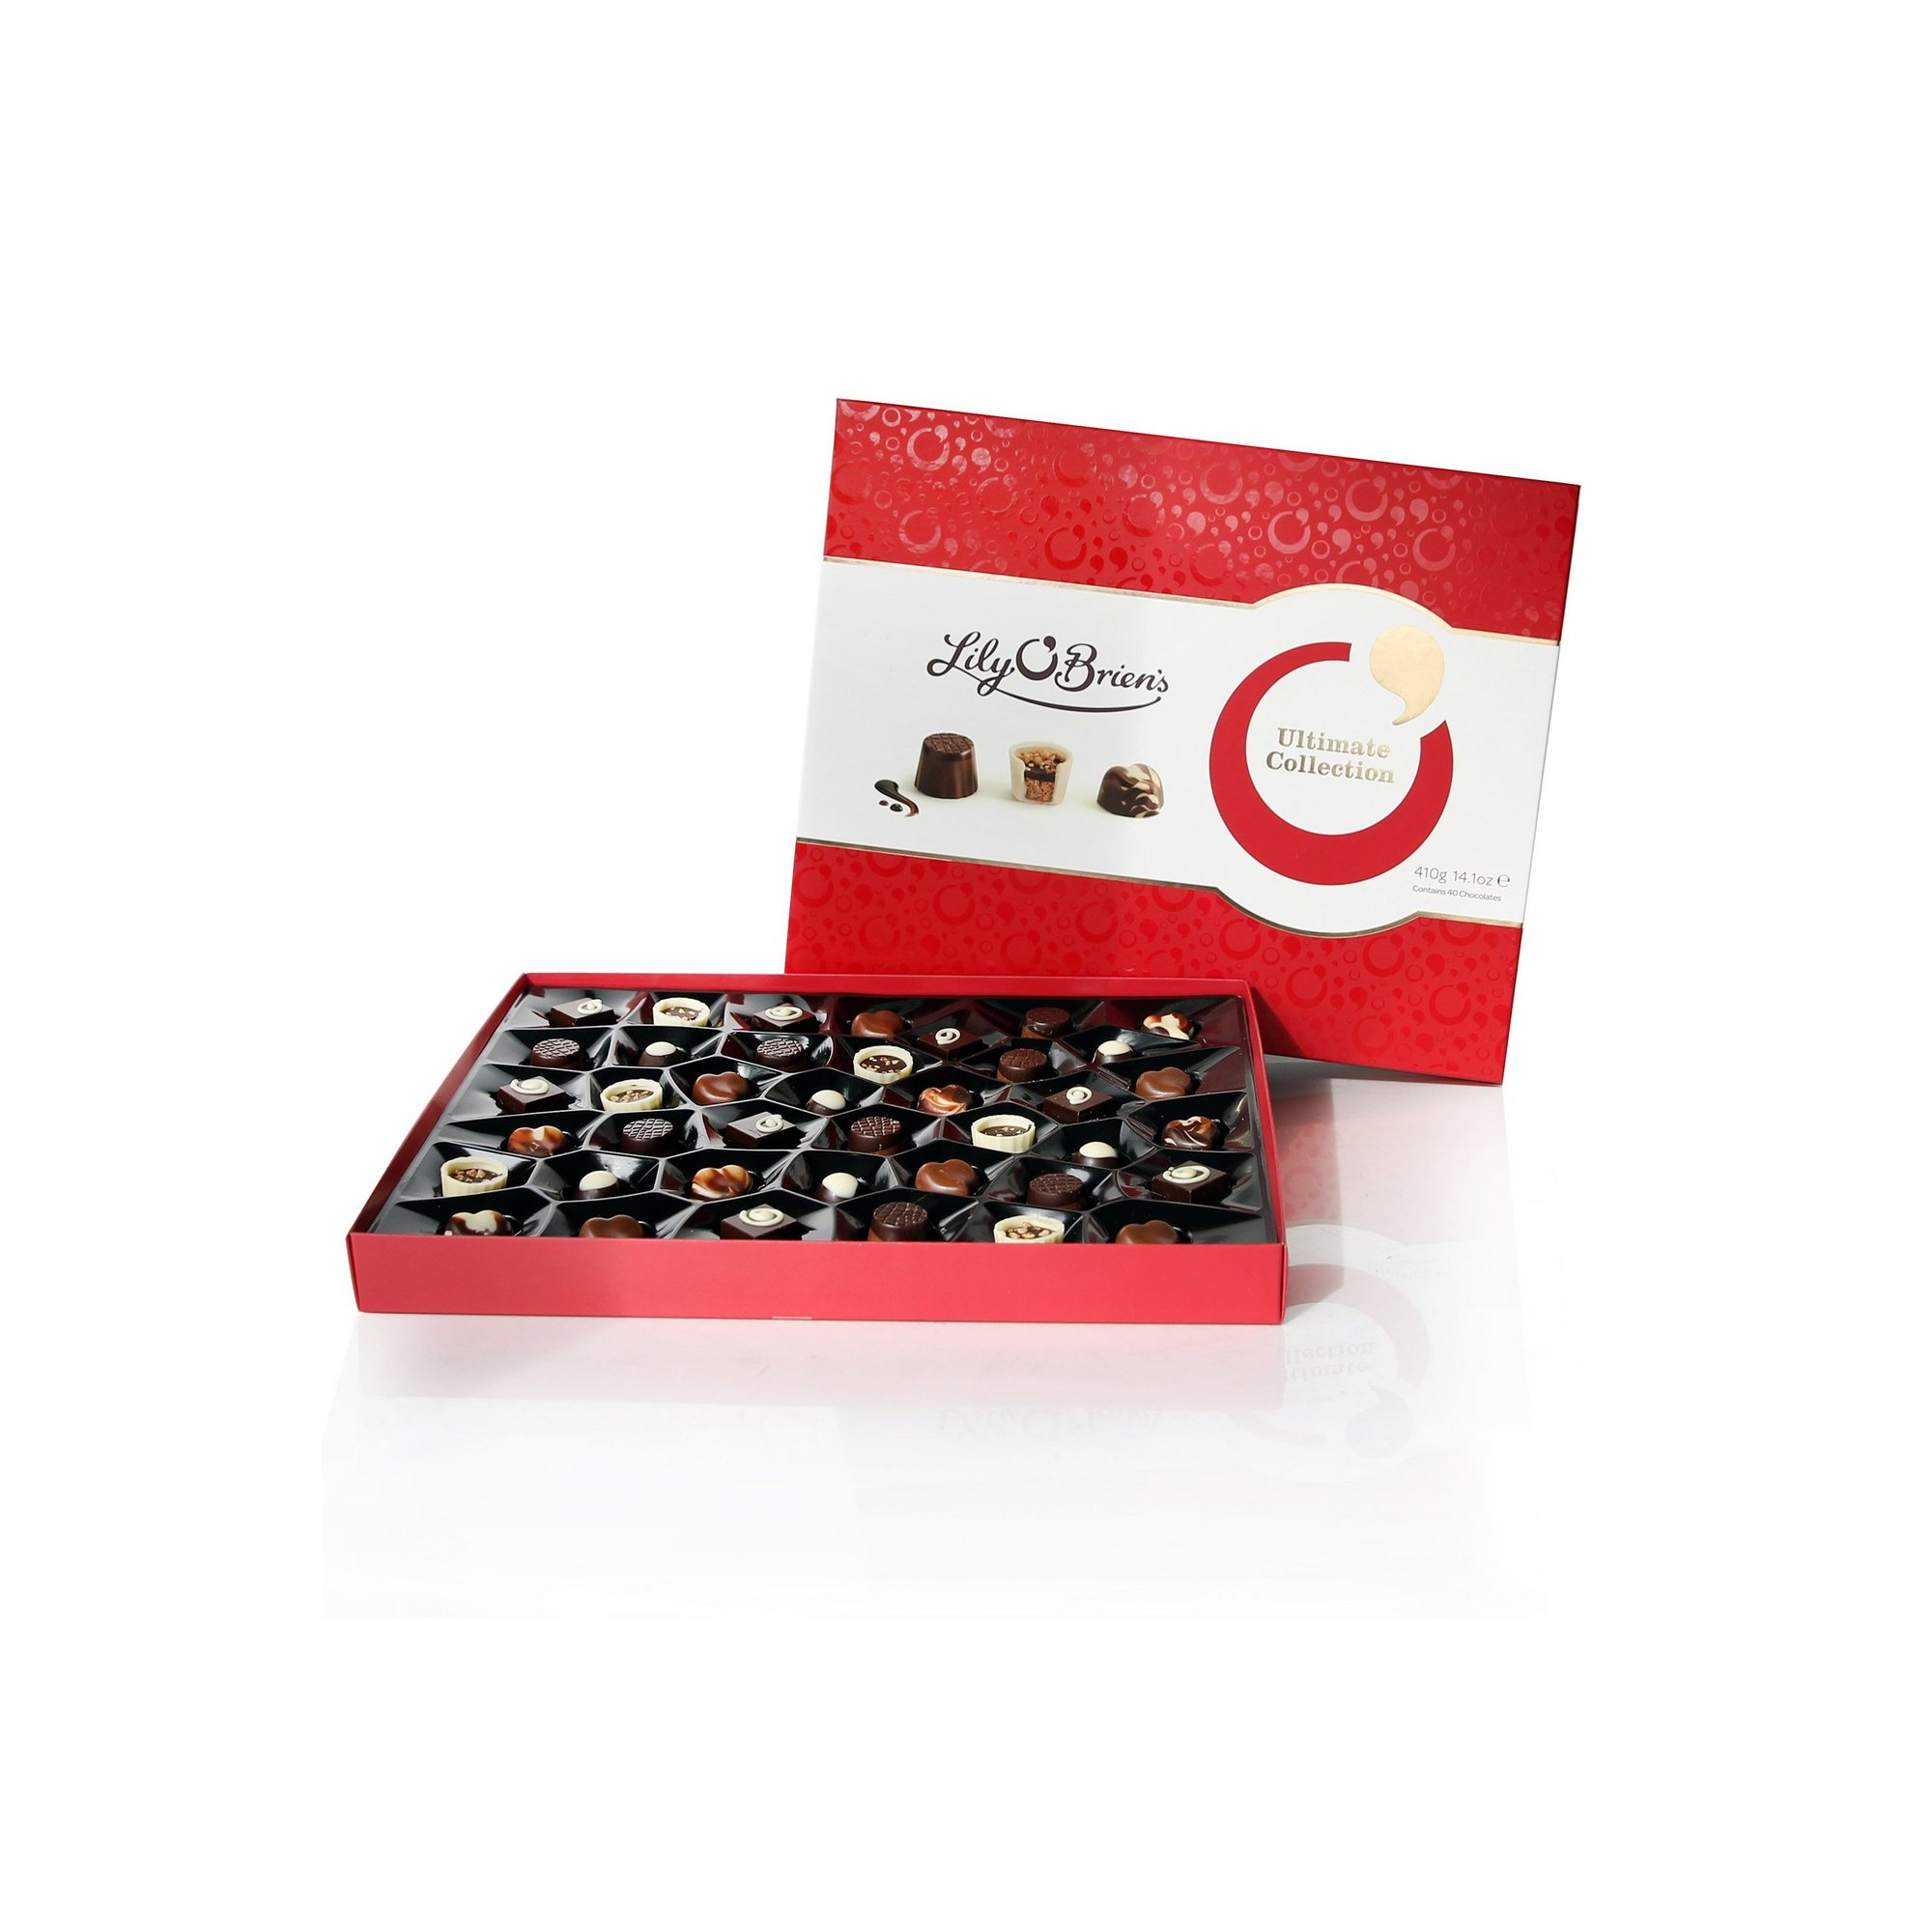 Image of Lily OBriens Decadent Chocolate Collection